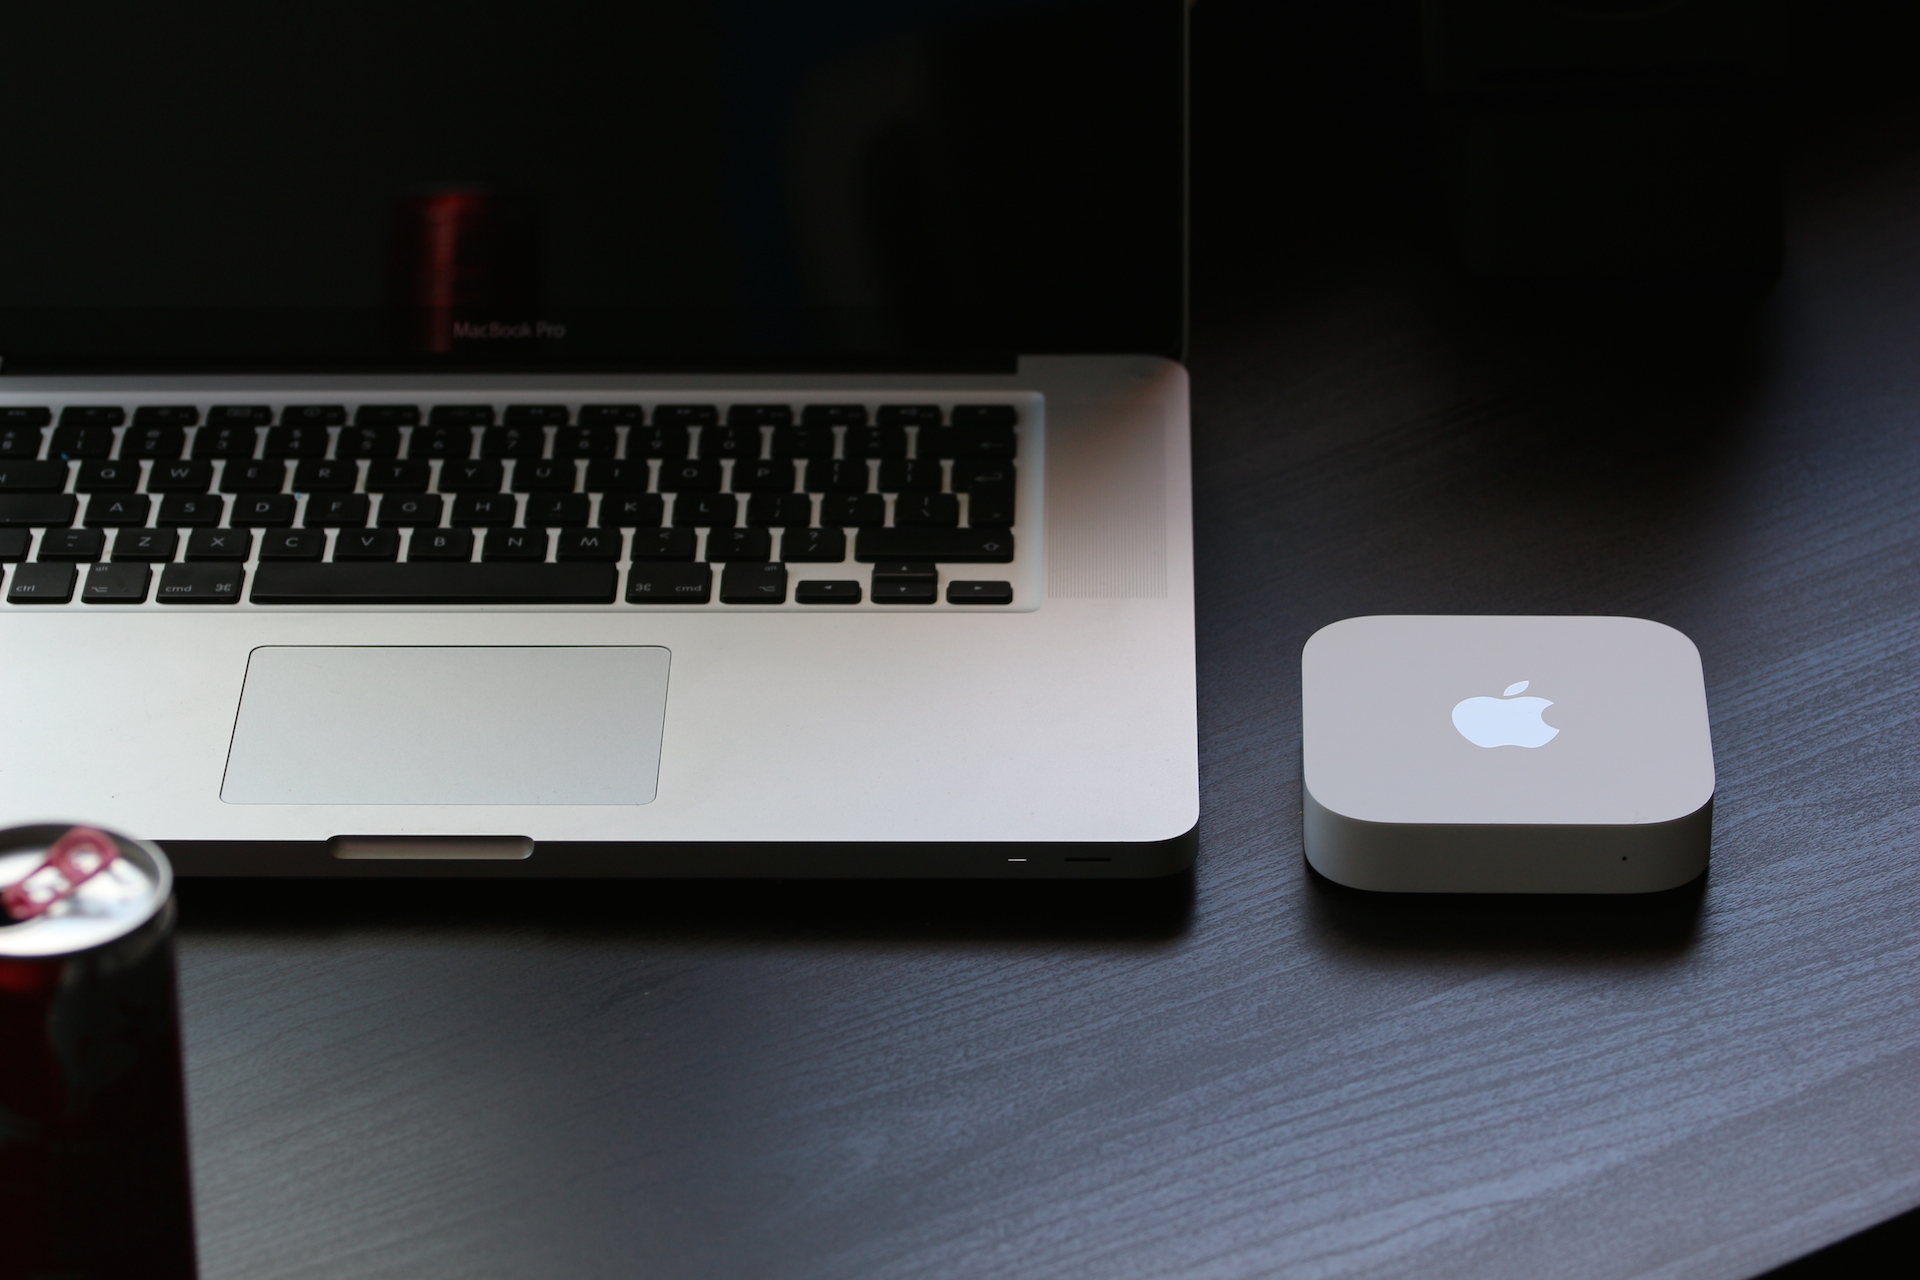 AirPort Express MBP